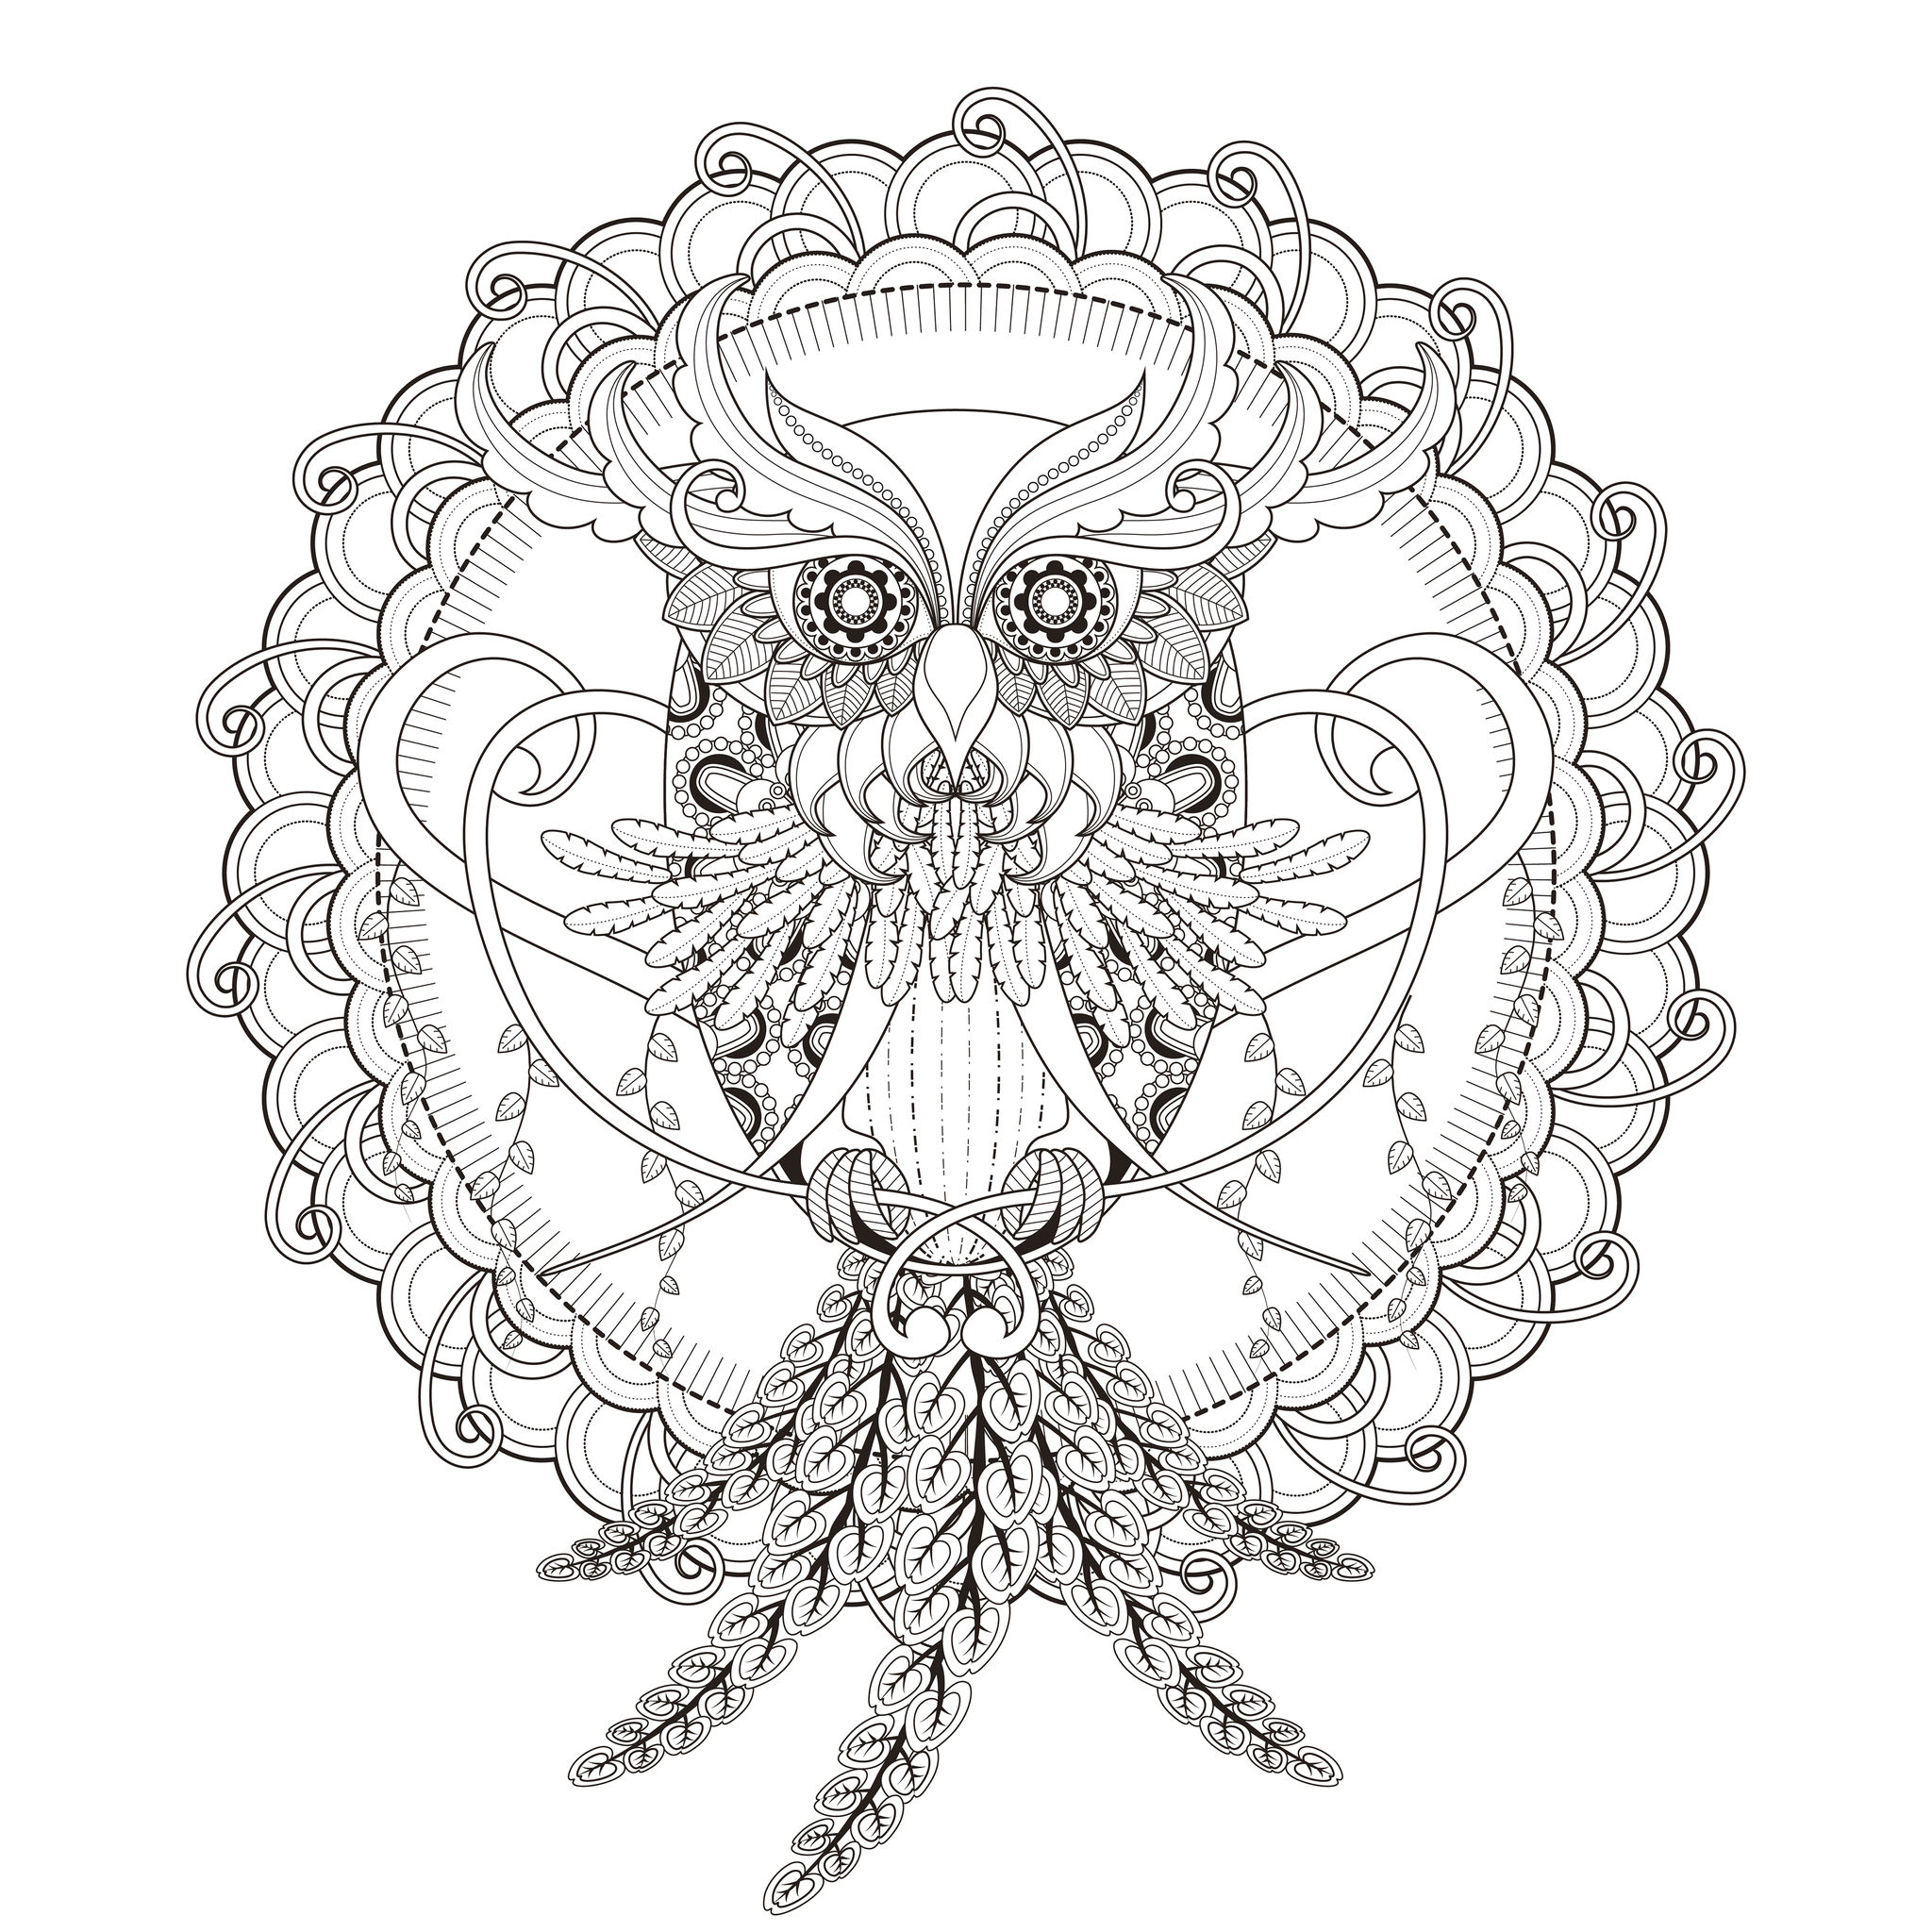 Mandala Owl by Kchung | Mandalas - Coloring pages for adults | JustColor